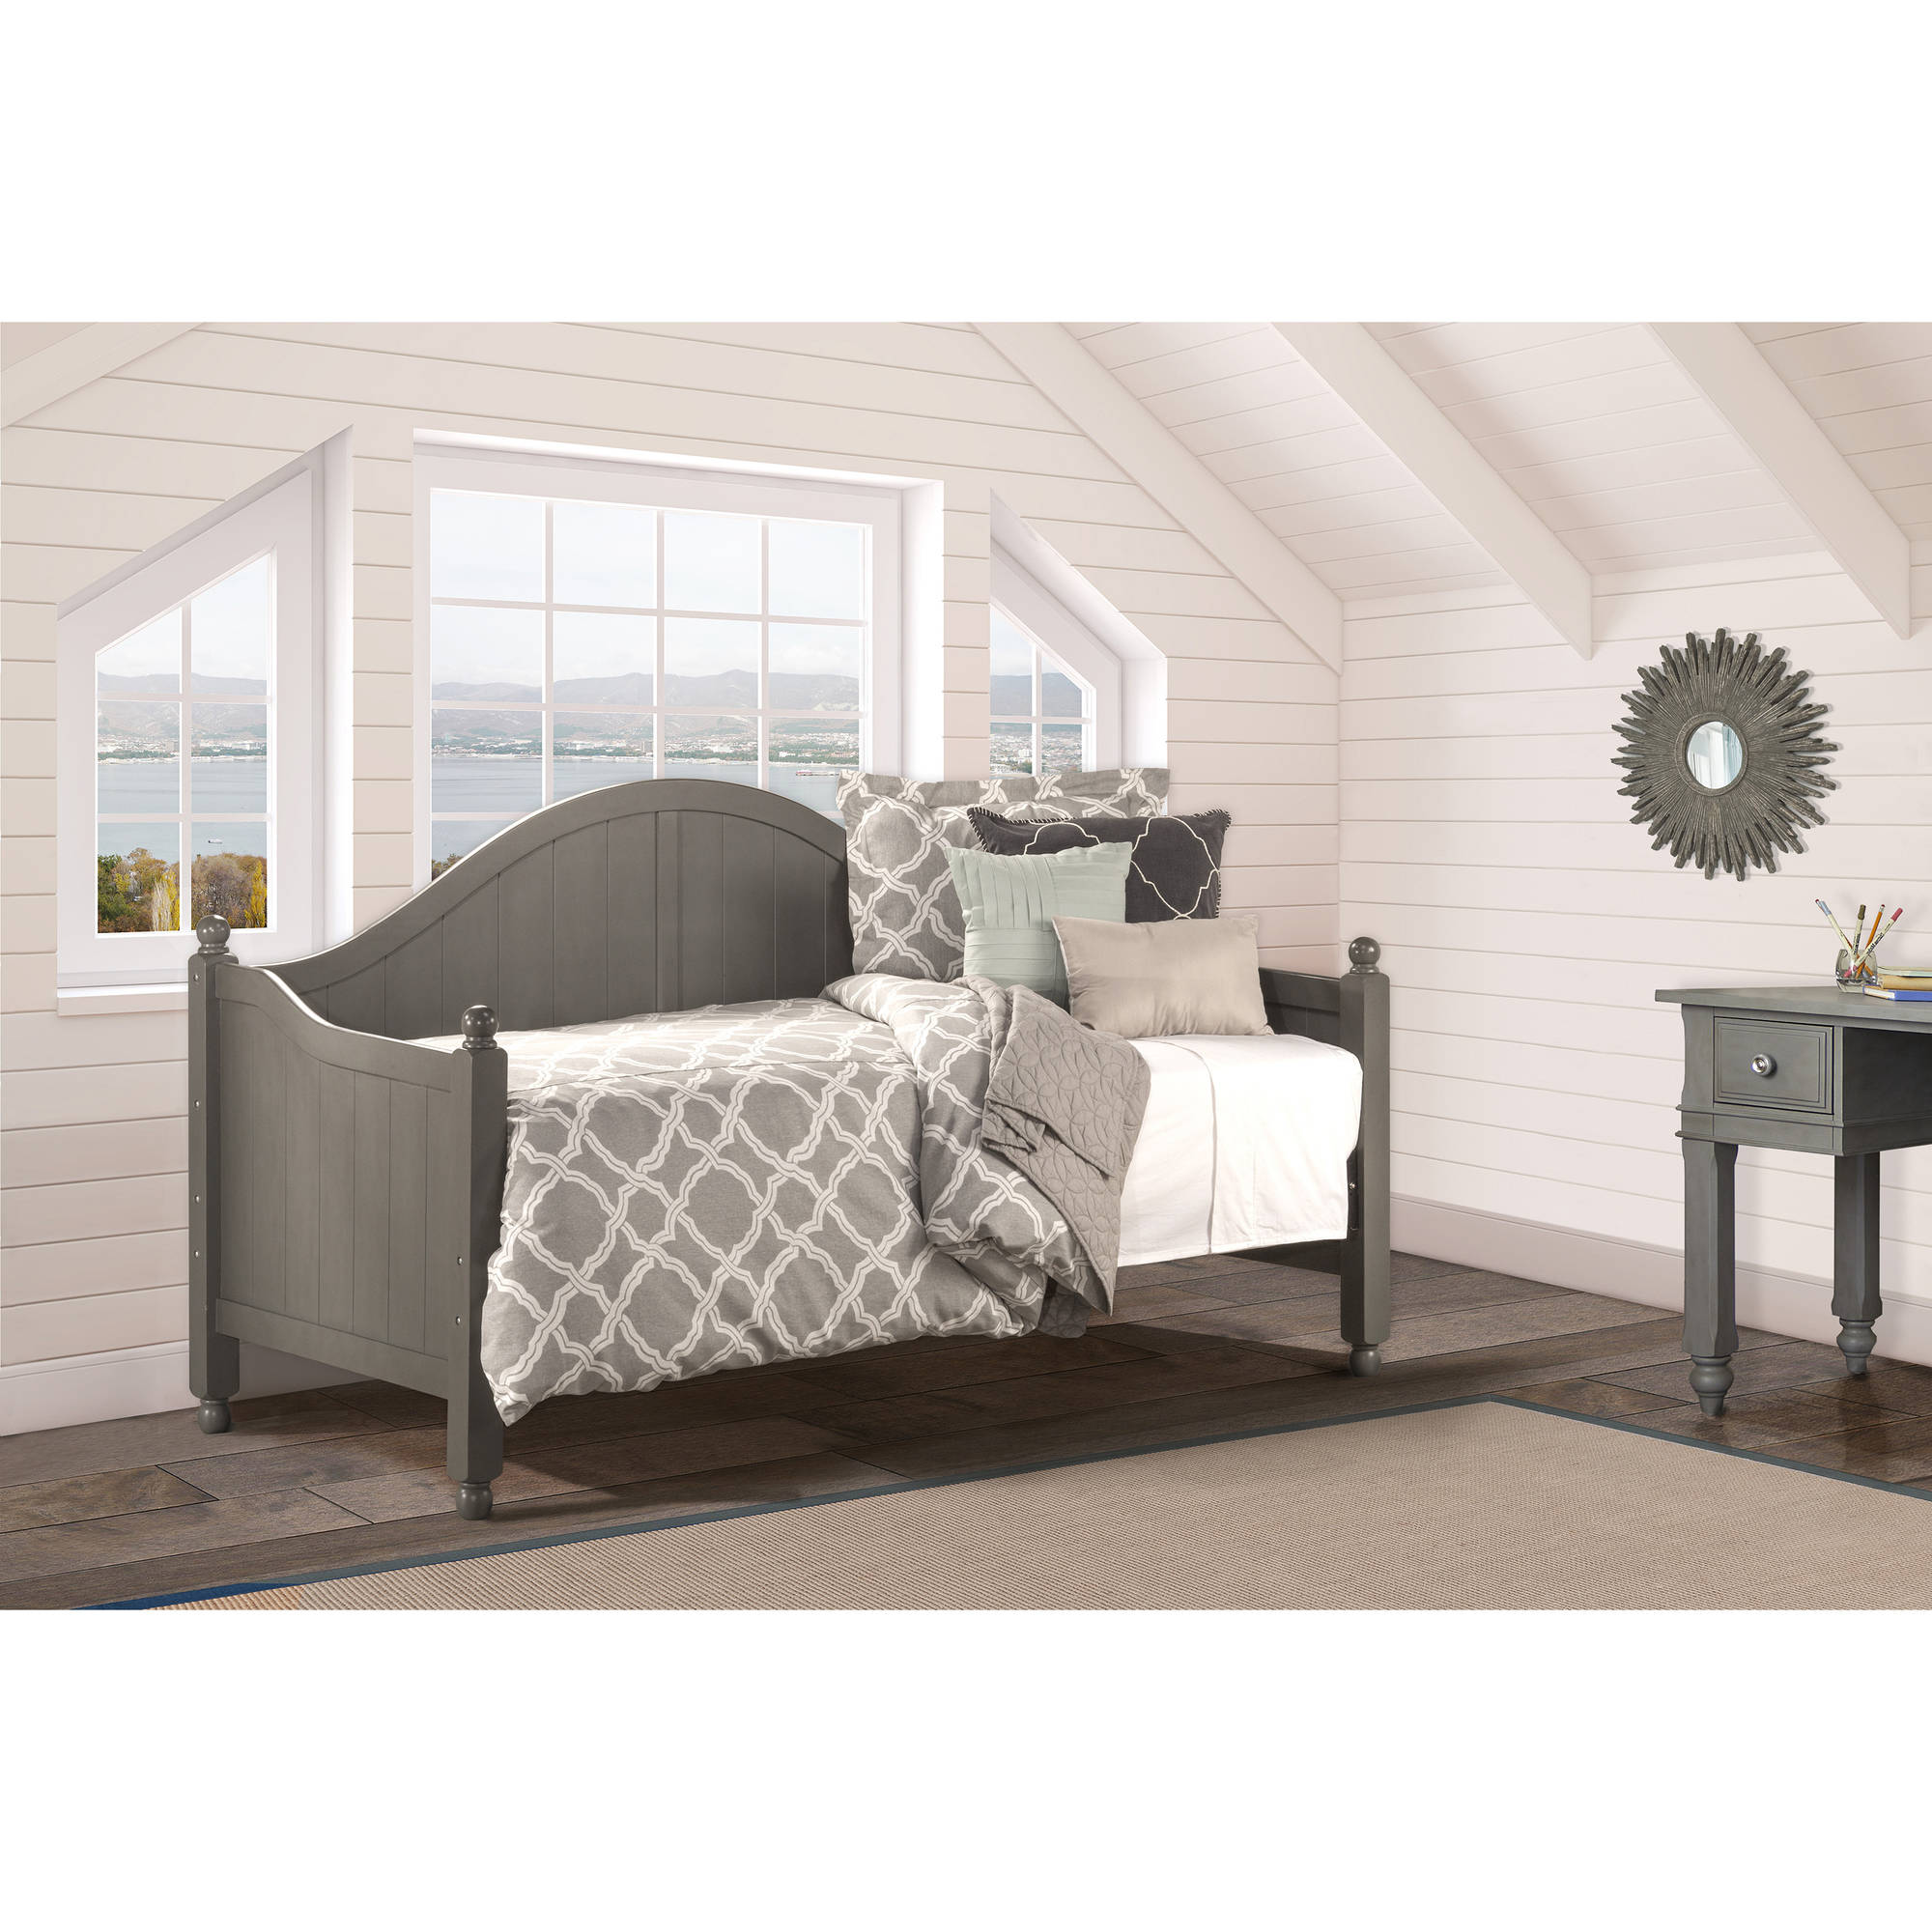 Augusta Day Bed with Day Bed Suspension Deck, Stone by Hillsdale Furniture